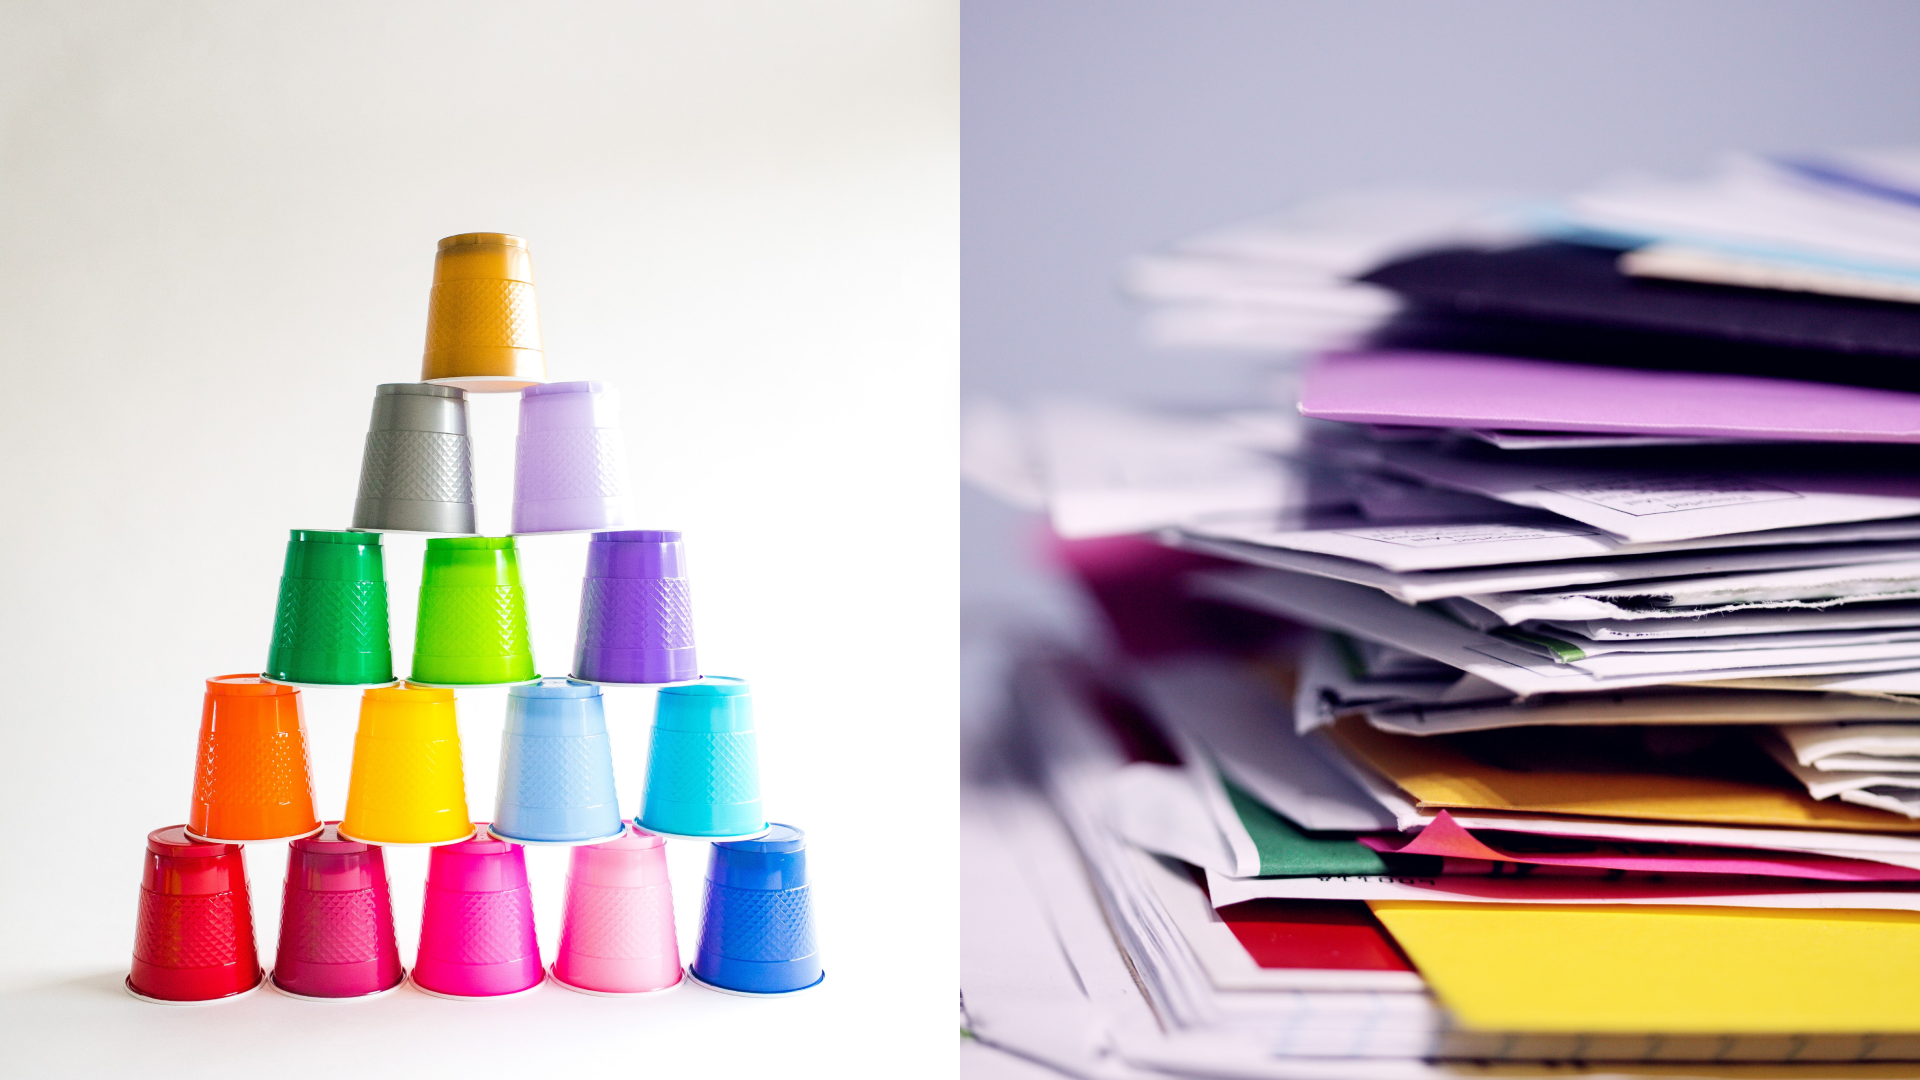 A pyramid of multi-colored cups next to a stack of multi-colored folders and paper